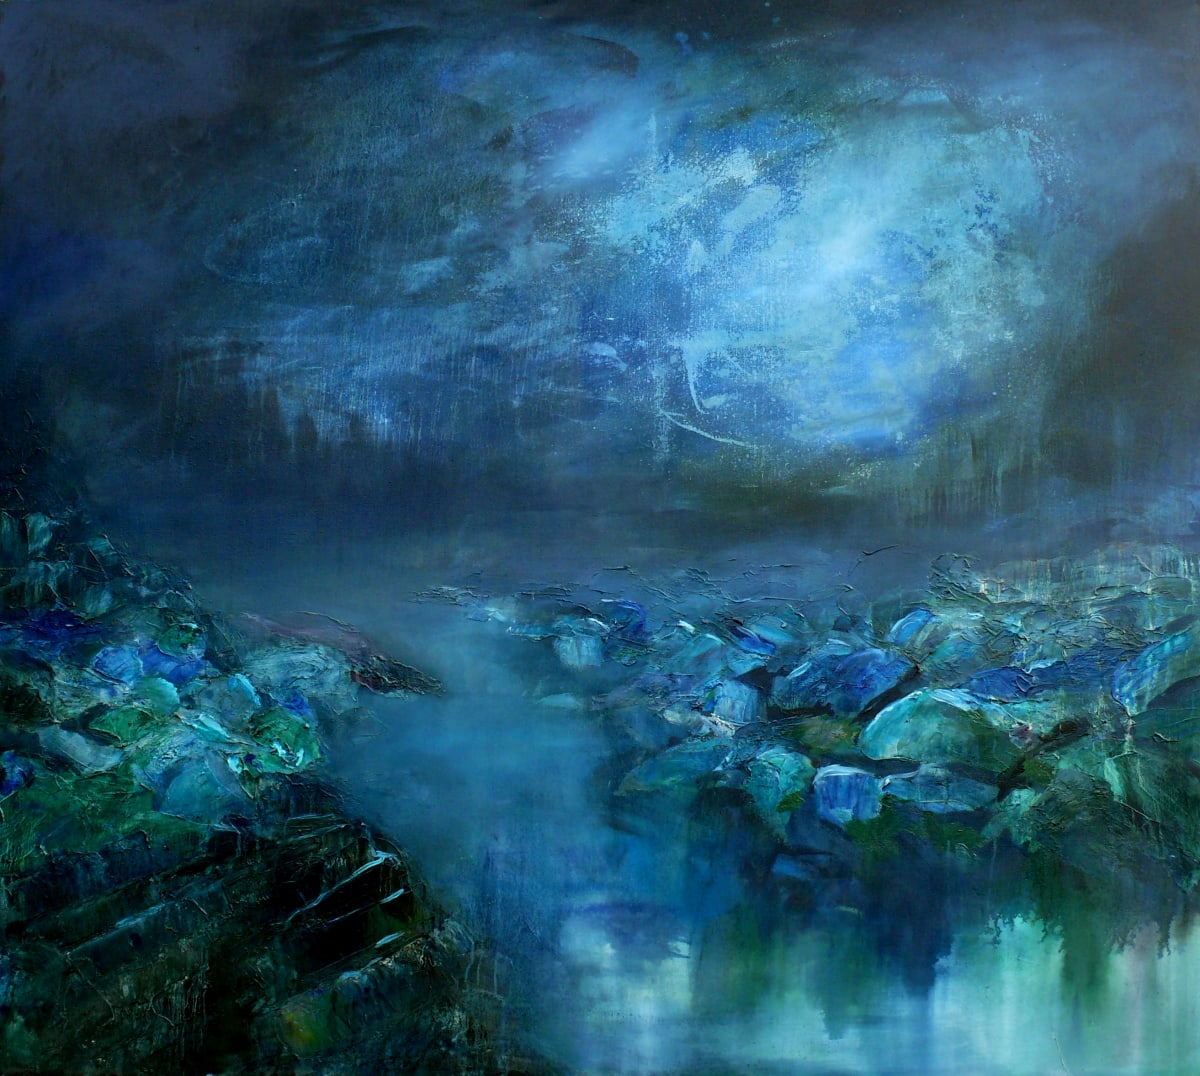 Leave me the darkness and the stillness by Sarah Jane Brown